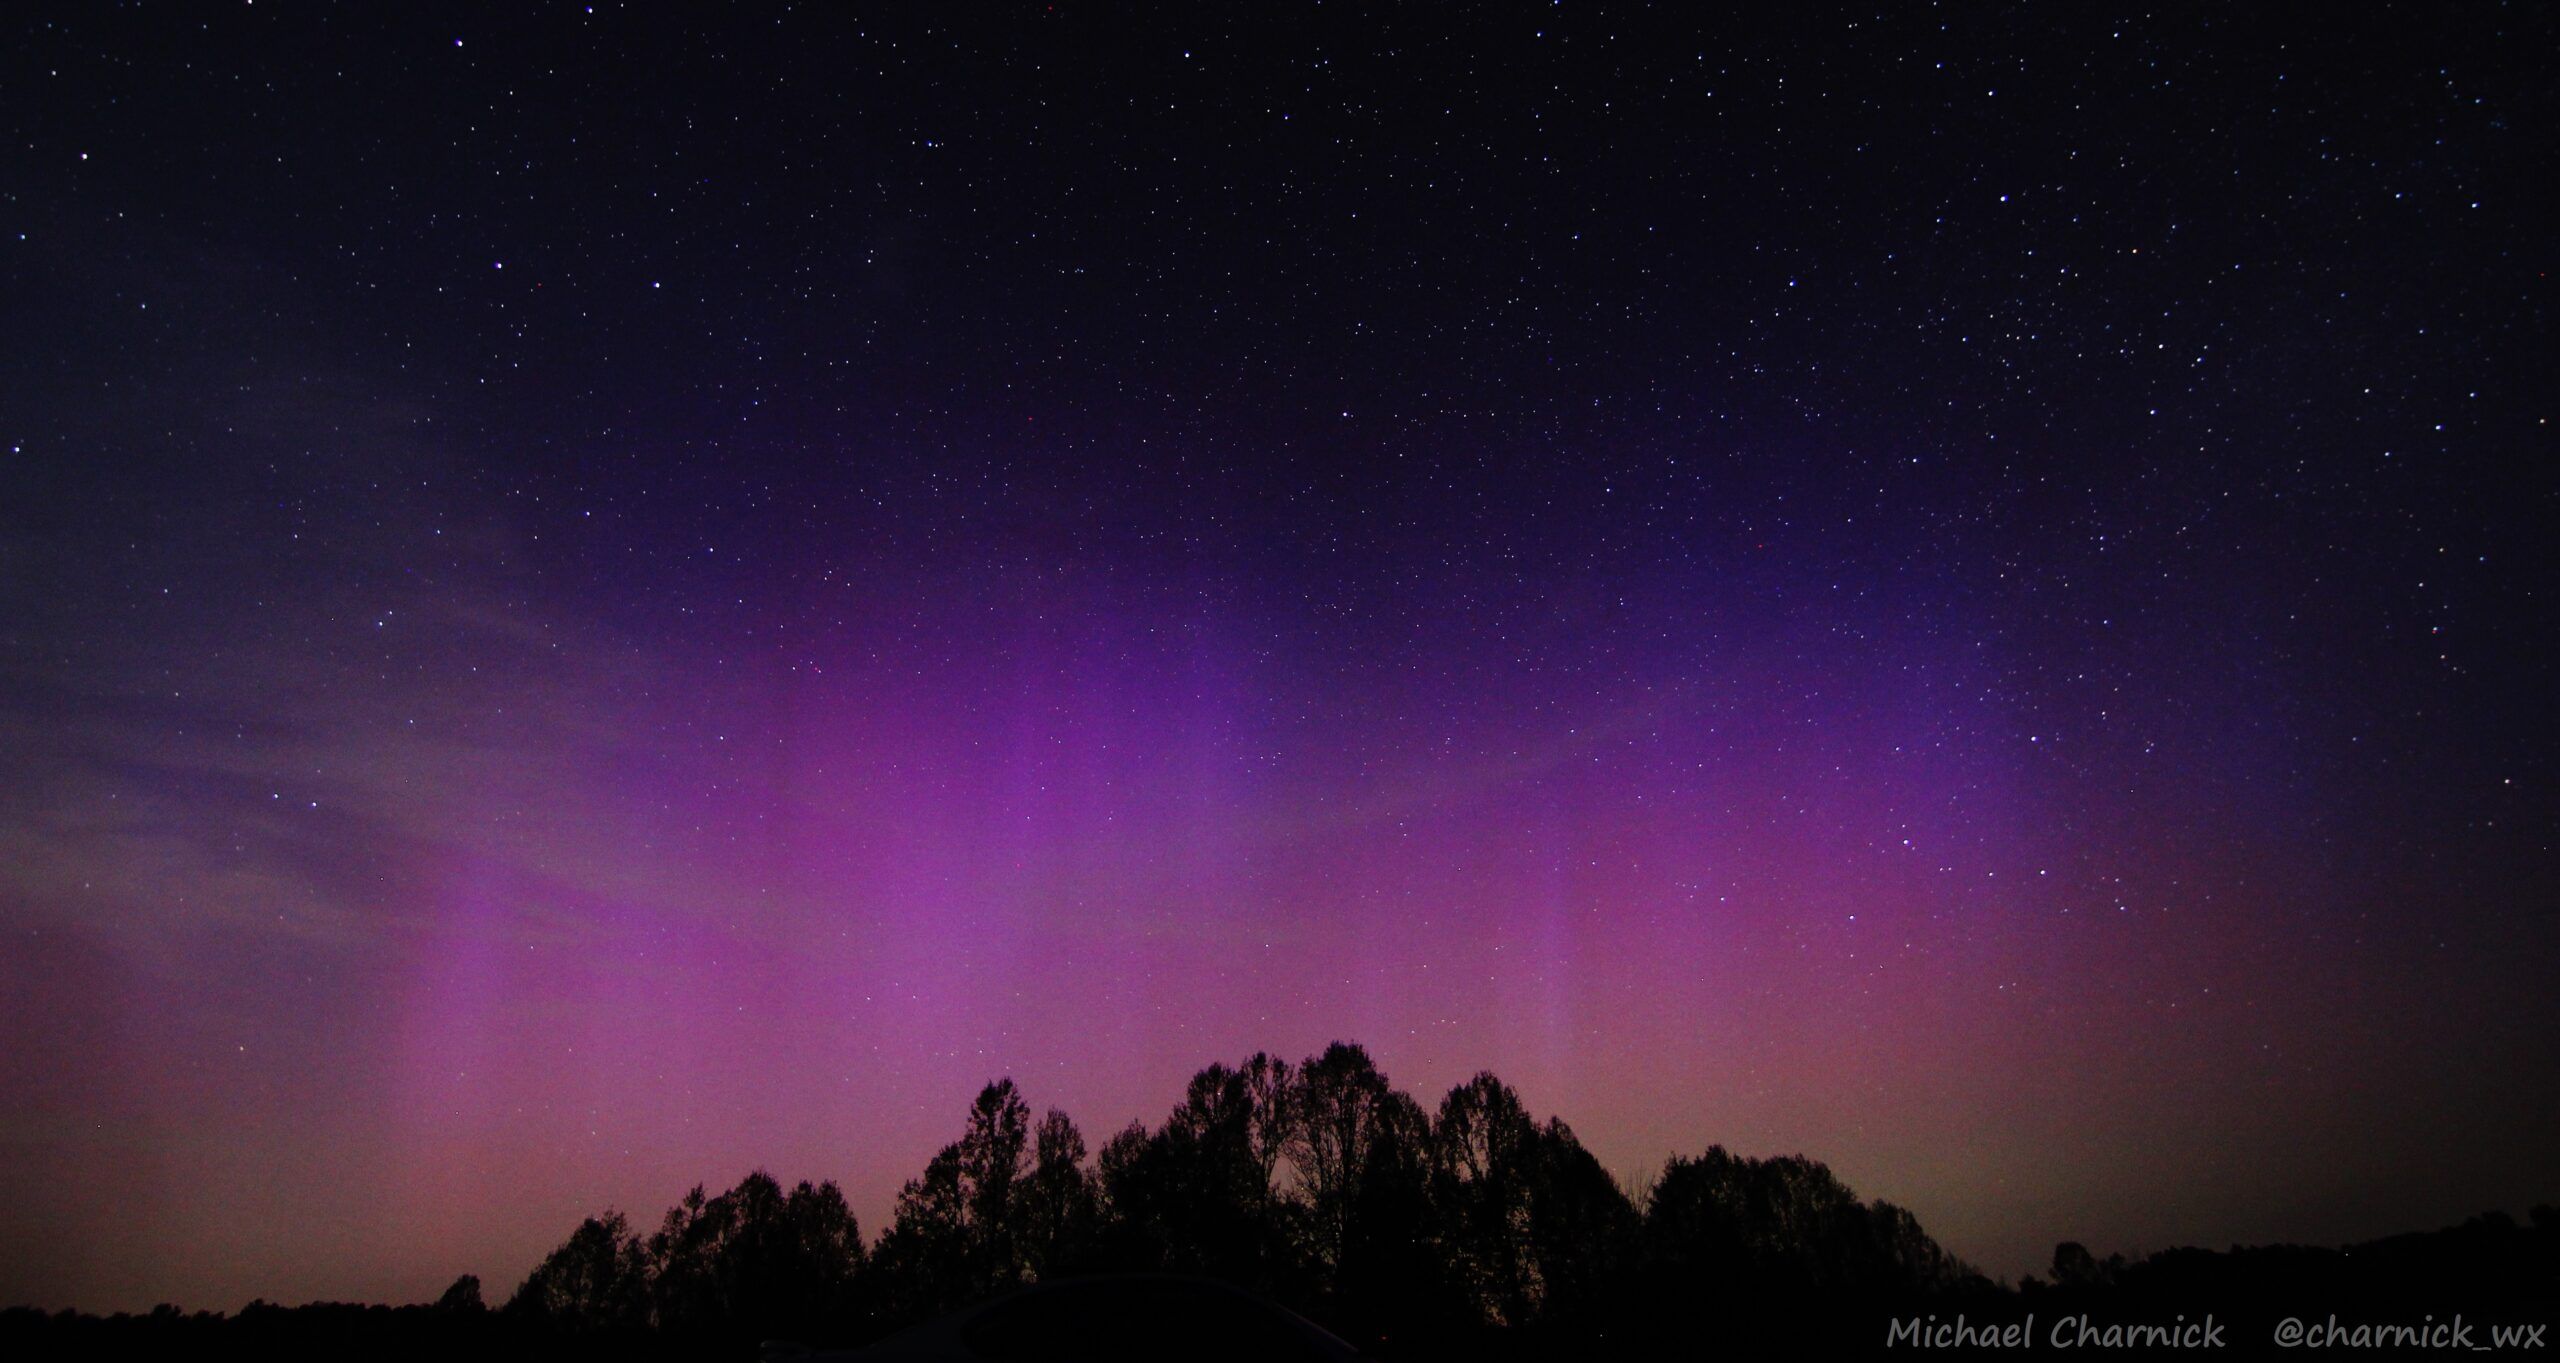 a pink and purple aurora shines in the night sky over a dark silhouette of trees